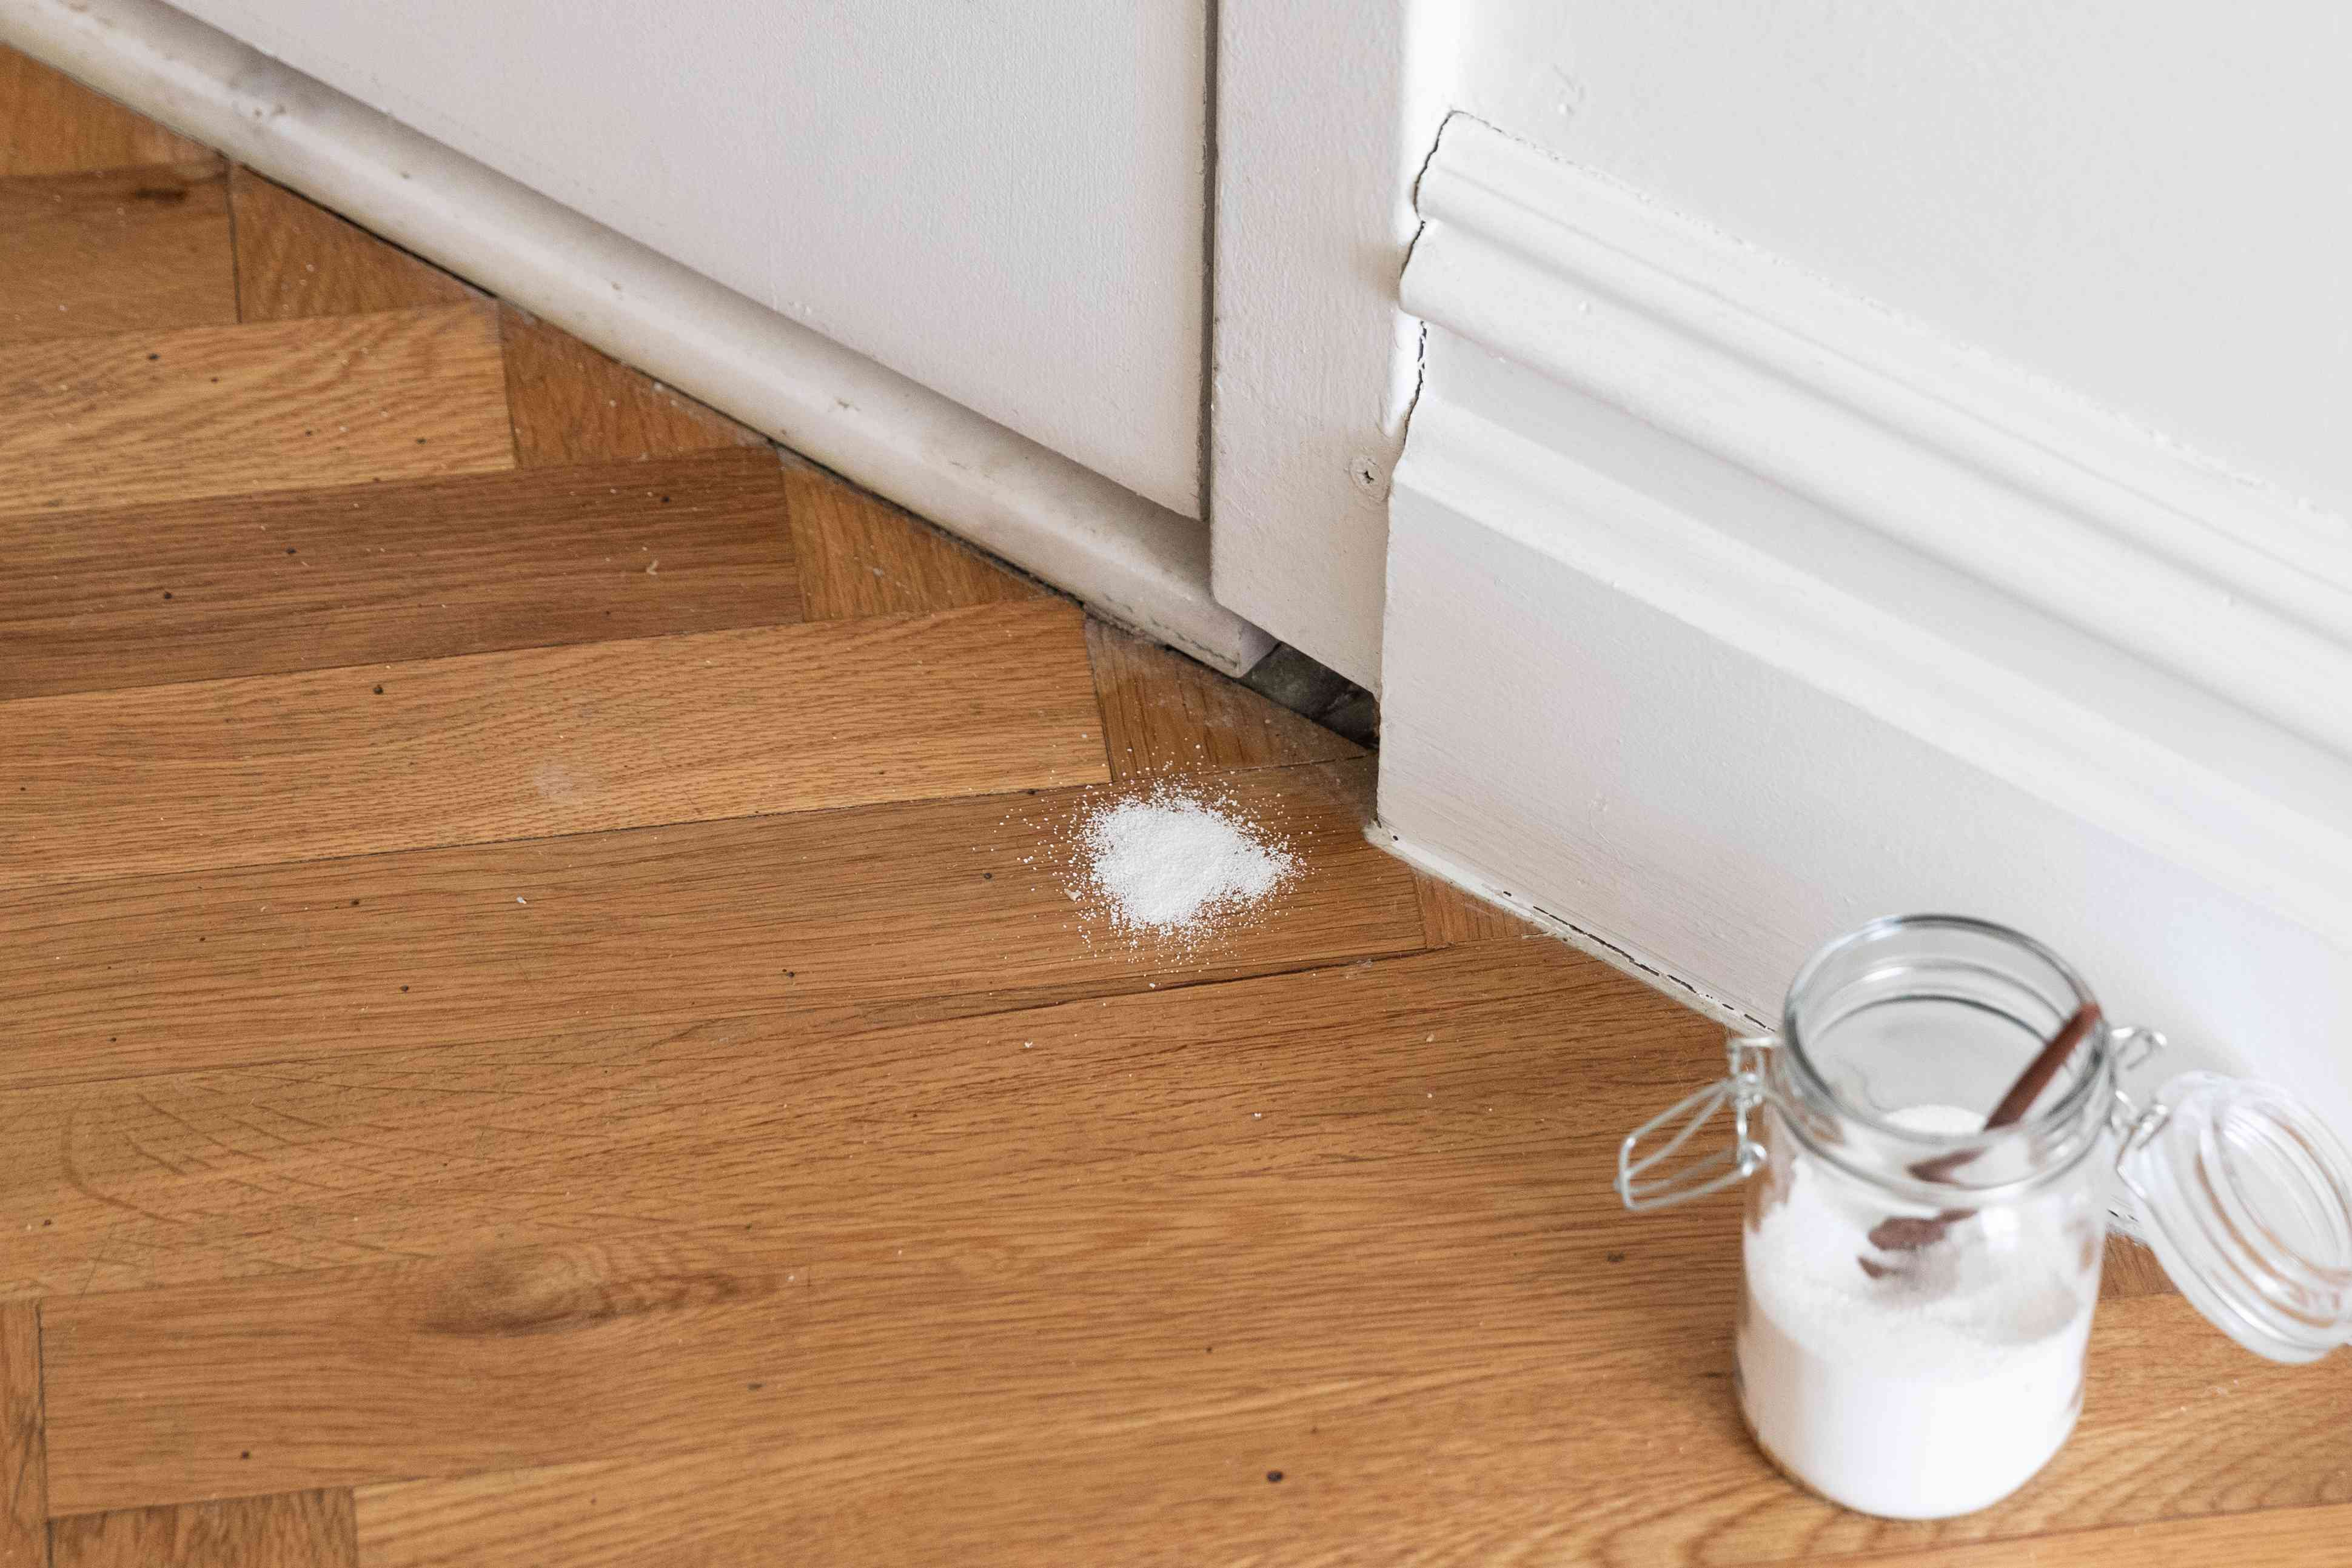 Borax and sugar sprinkled near open crack to kill cockroaches